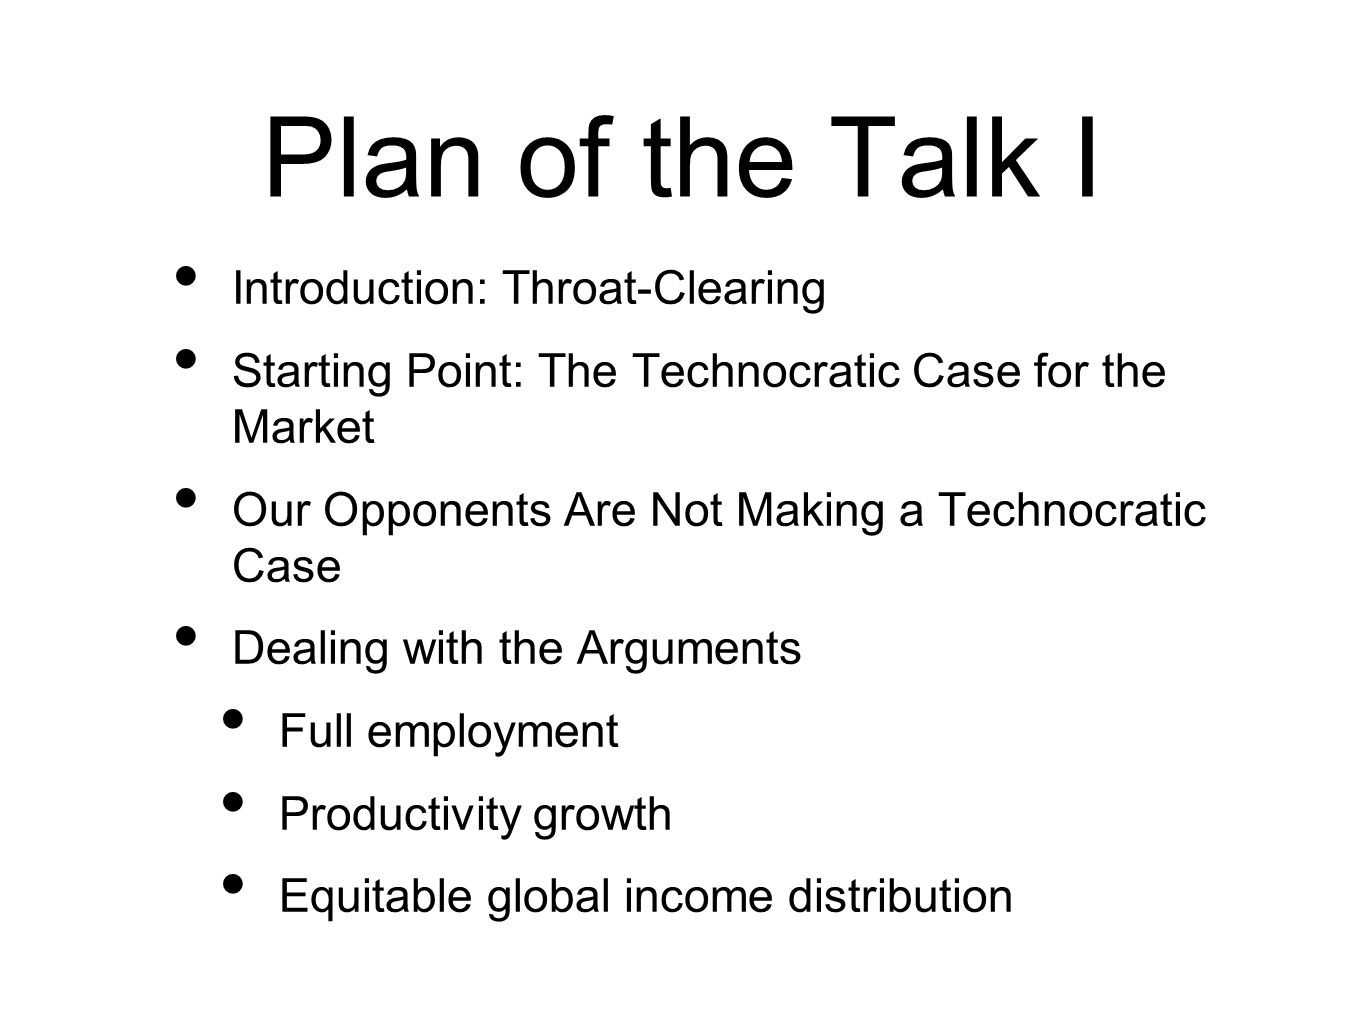 Plan of the Talk I Introduction: Throat-Clearing Starting Point: The Technocratic Case for the Market Our Opponents Are Not Making a Technocratic Case Dealing with the Arguments Full employment Productivity growth Equitable global income distribution